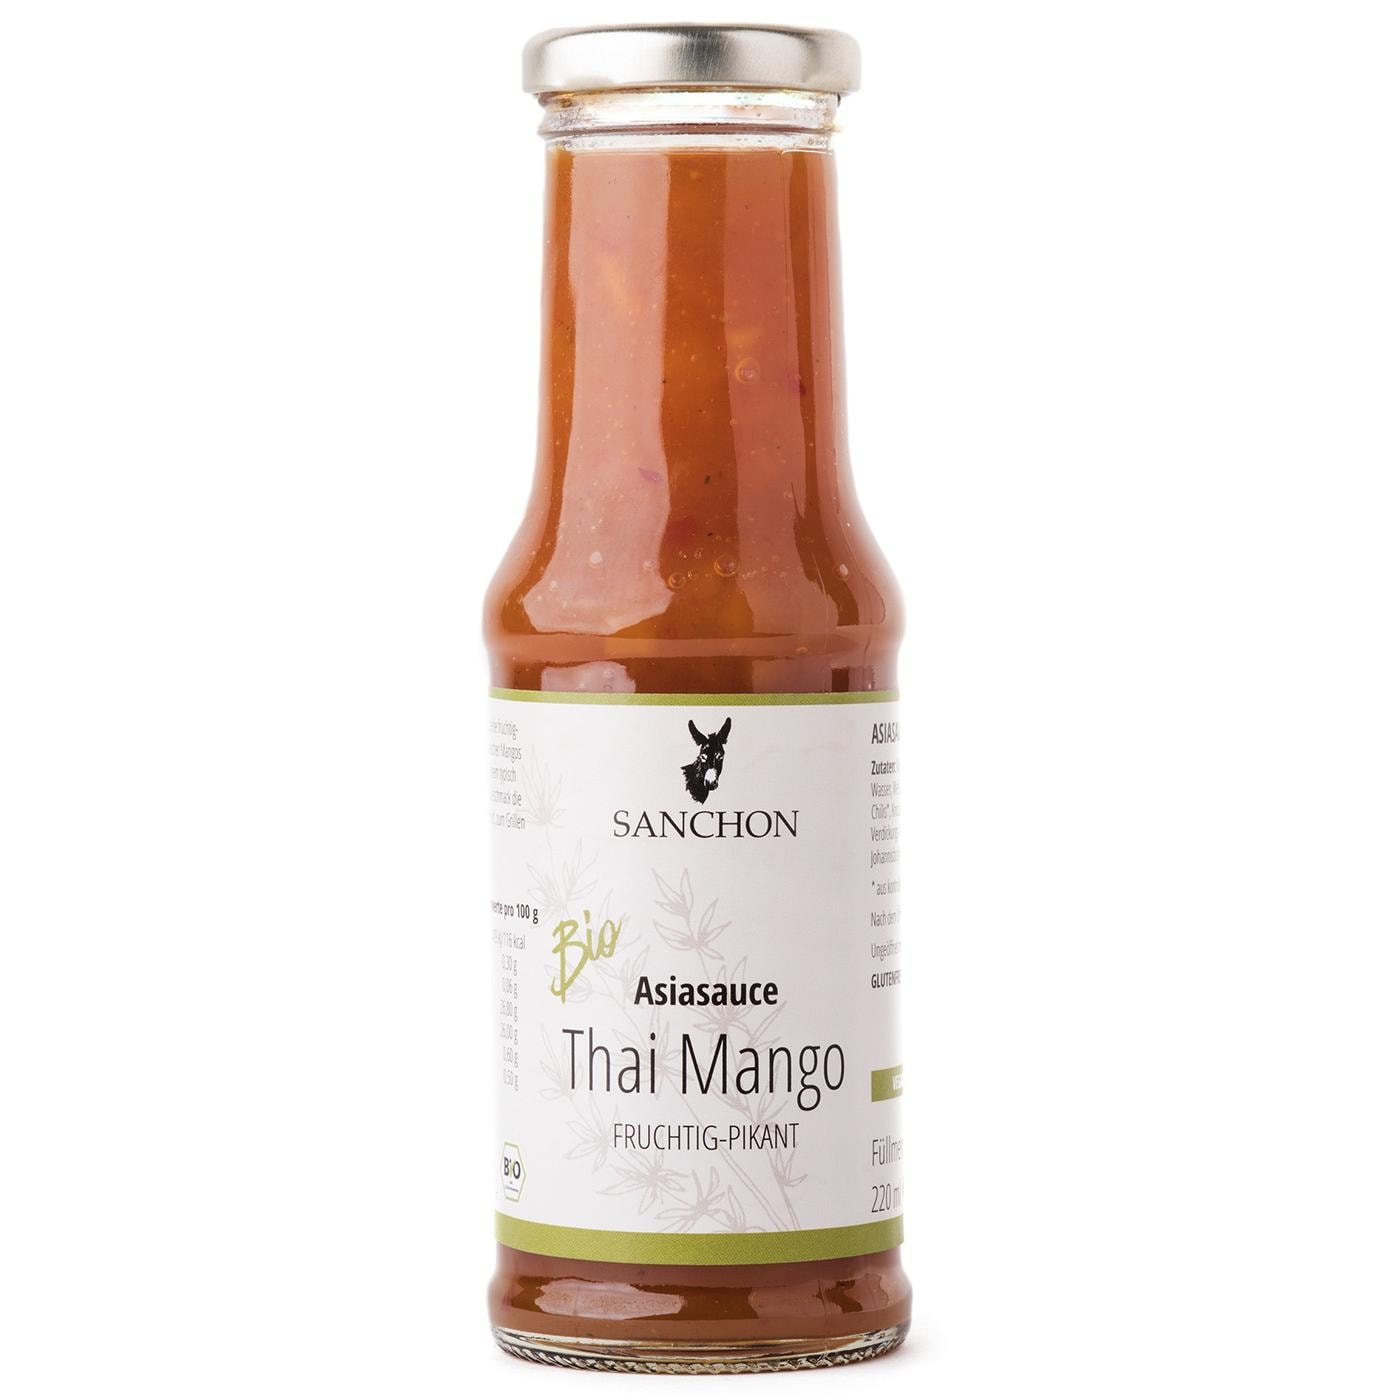 Sanchon Bio Asia Sauce Thai Mango 220ml